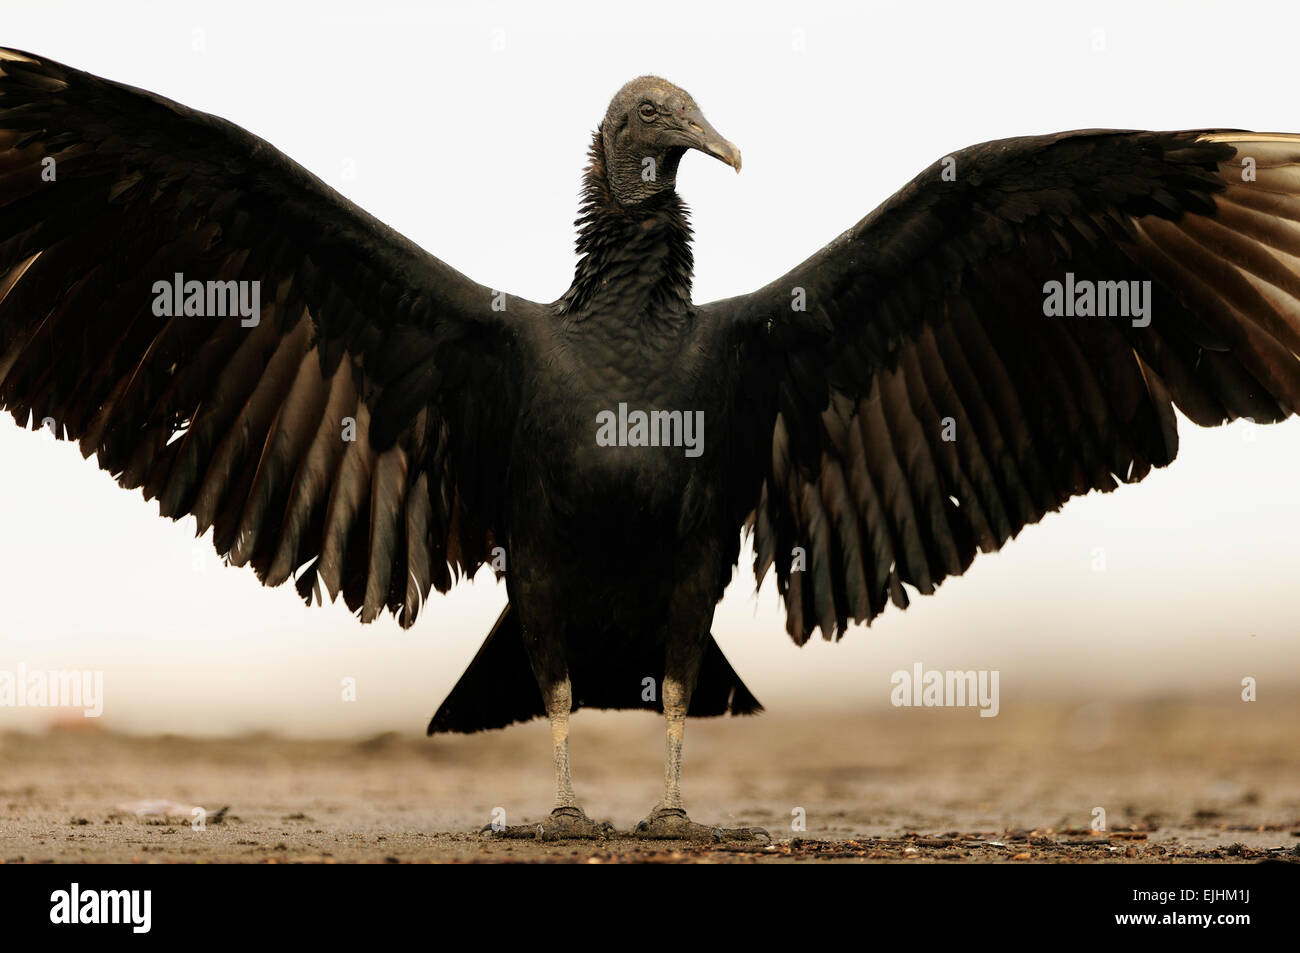 Black vulture (Coragyps atratus) waiting for olive ridley sea turtle (Lepidochelys olivacea) hatchlings to emerge - Stock Image